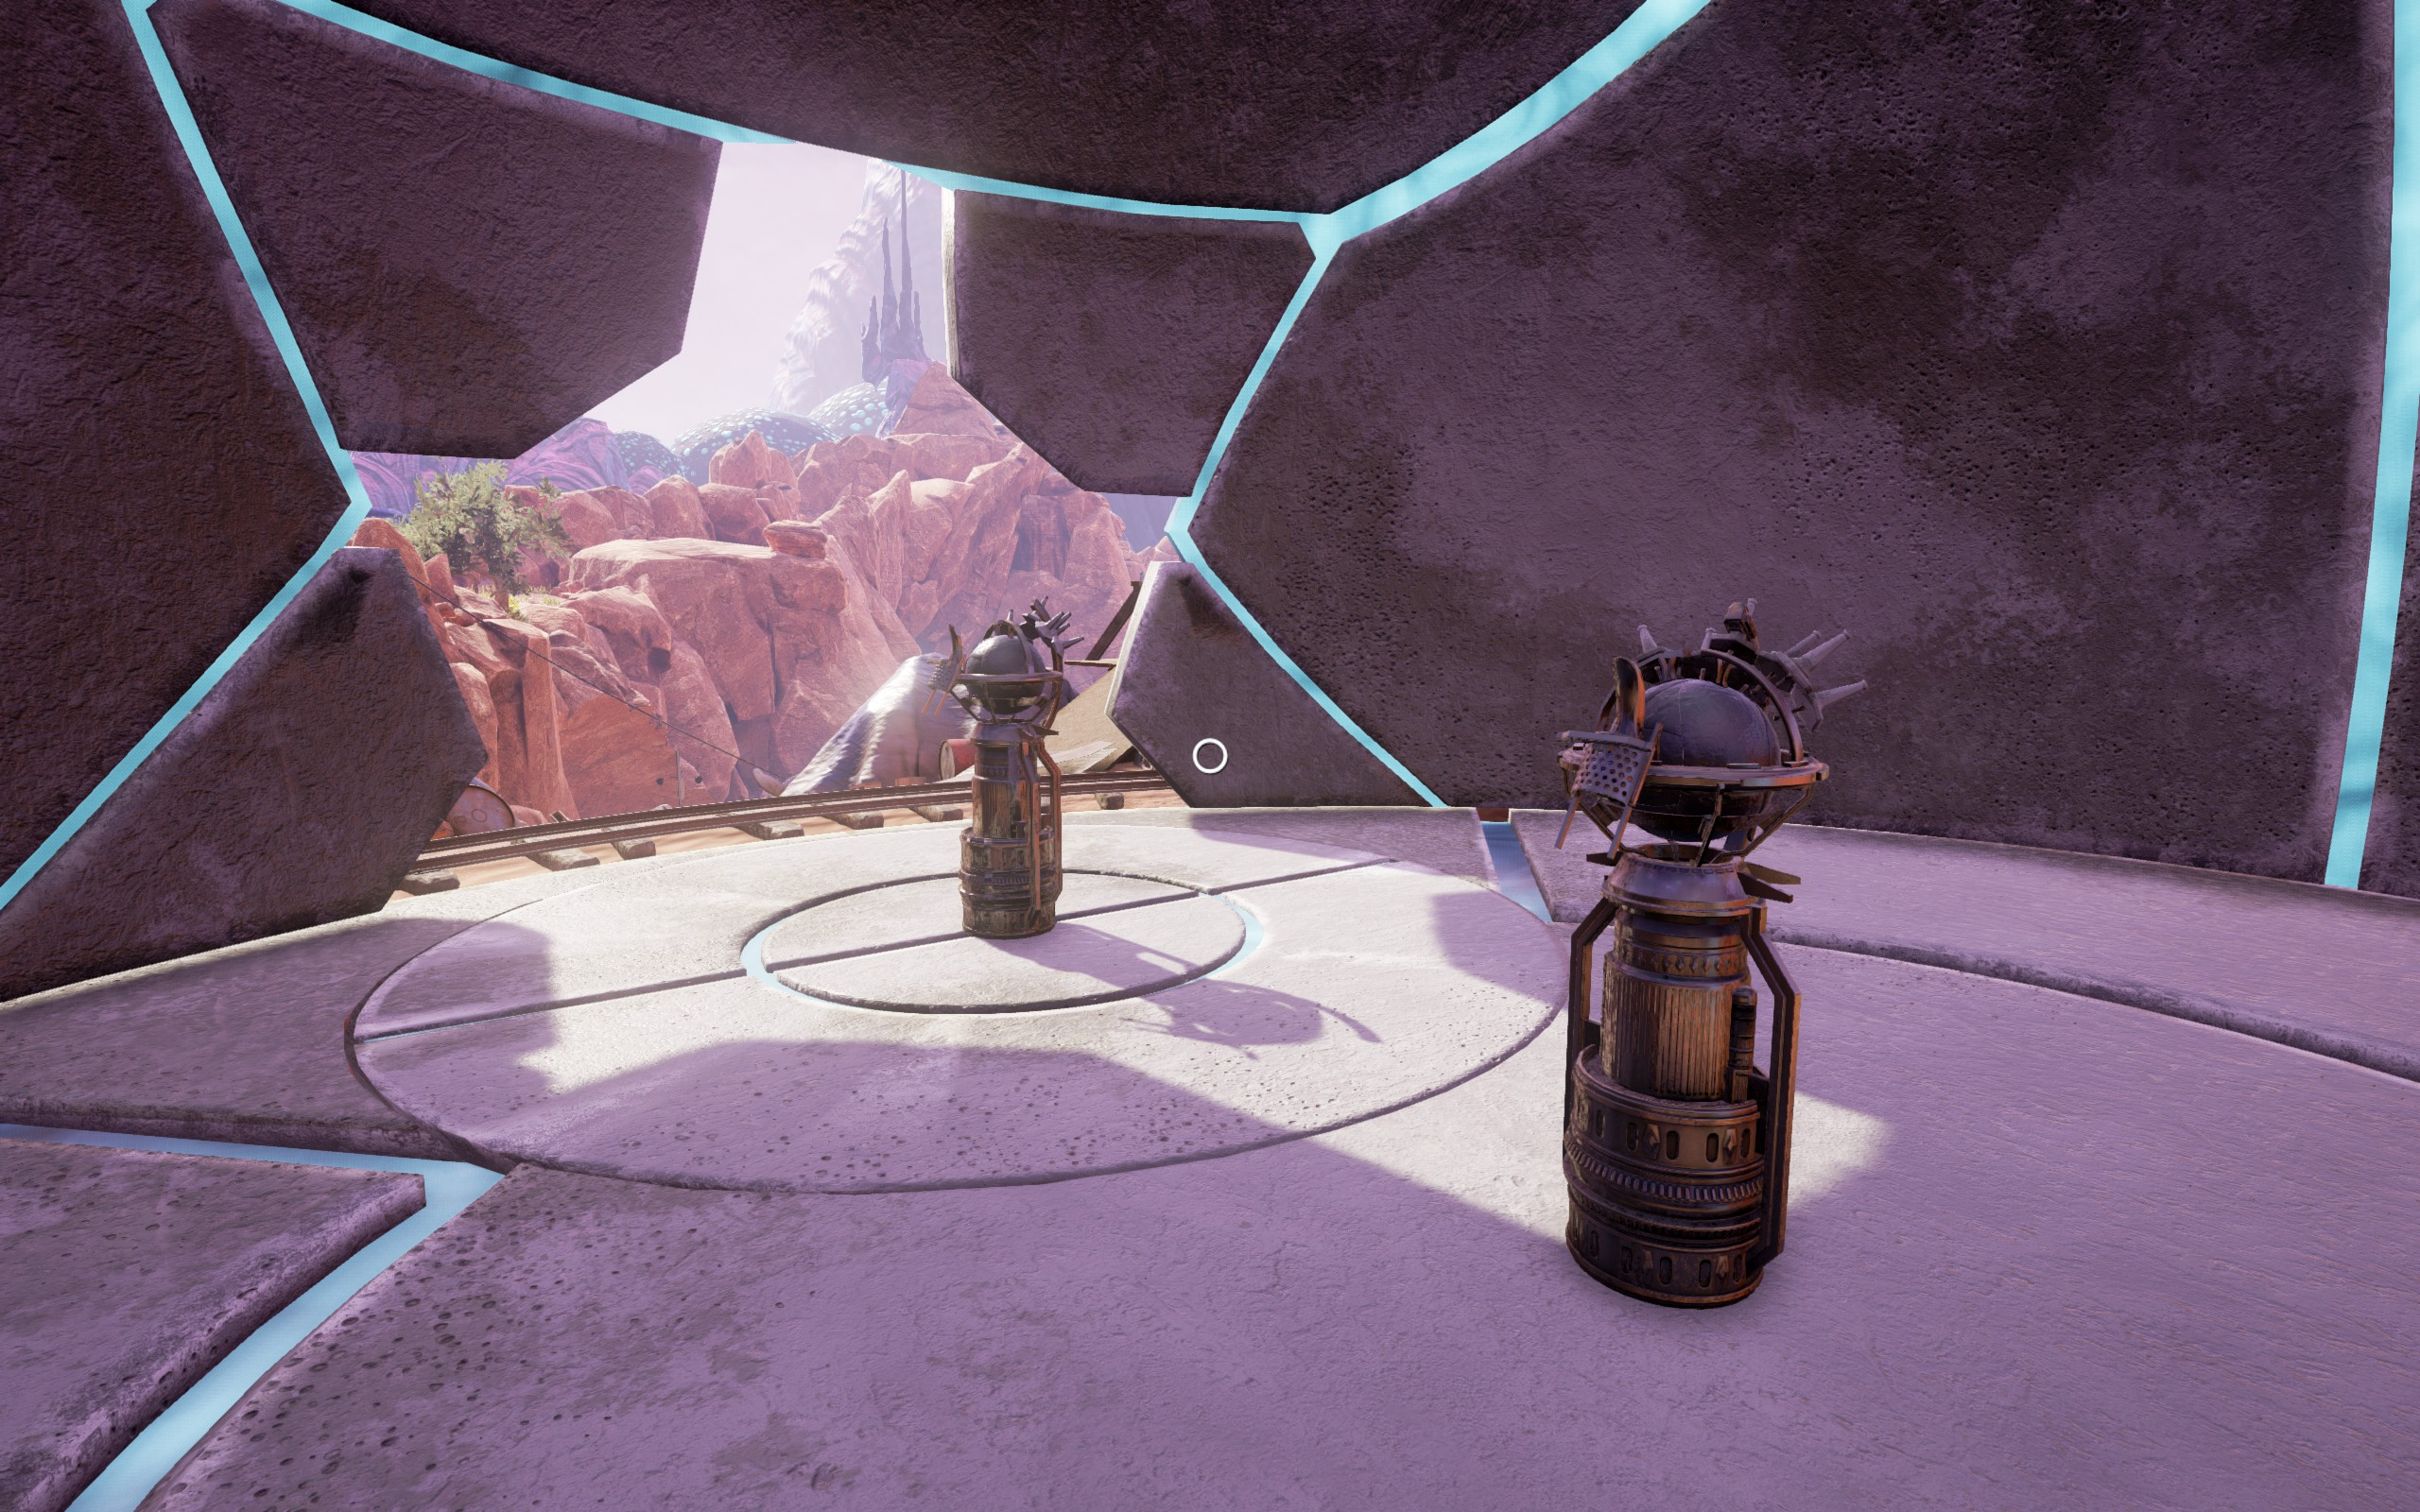 obduction game wallpaper 68016